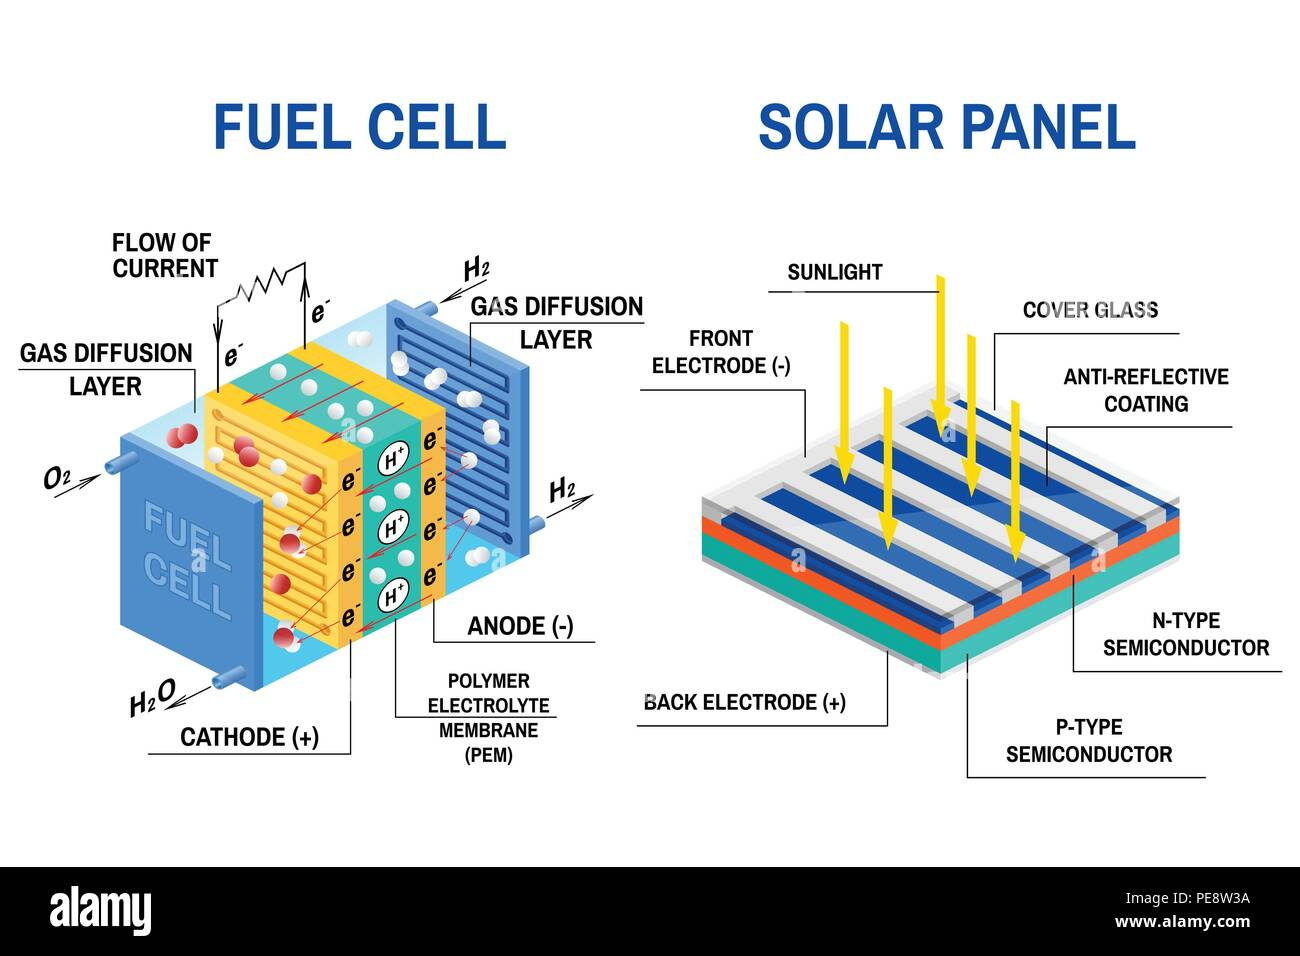 Process Of Converting Light To Electricity And Fuel Cell Diagram Electric Panel Renewable Energy Concept Vector Illustration Solar Device That Converts